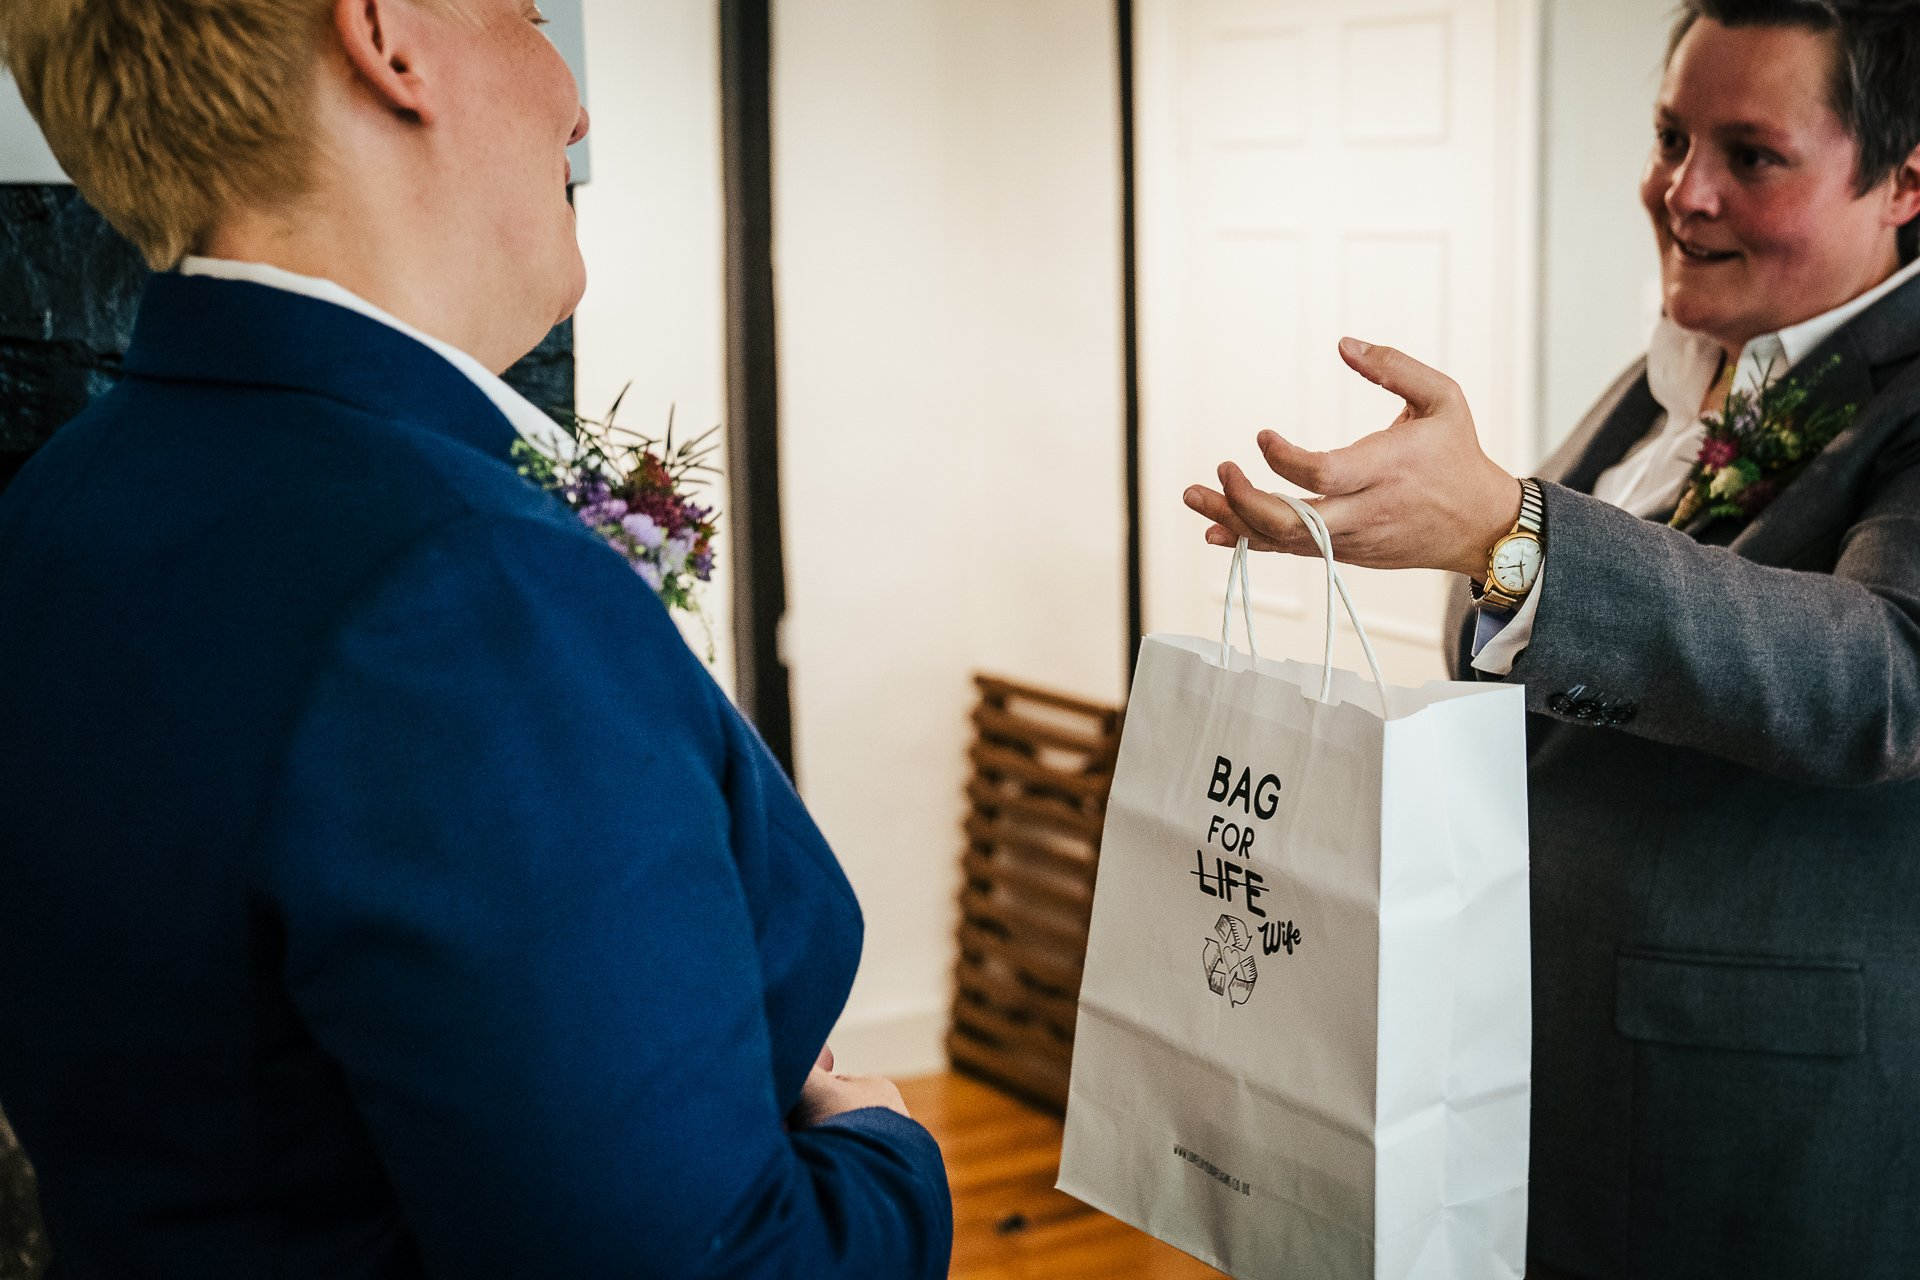 Two brides exchange gifts before their wedding